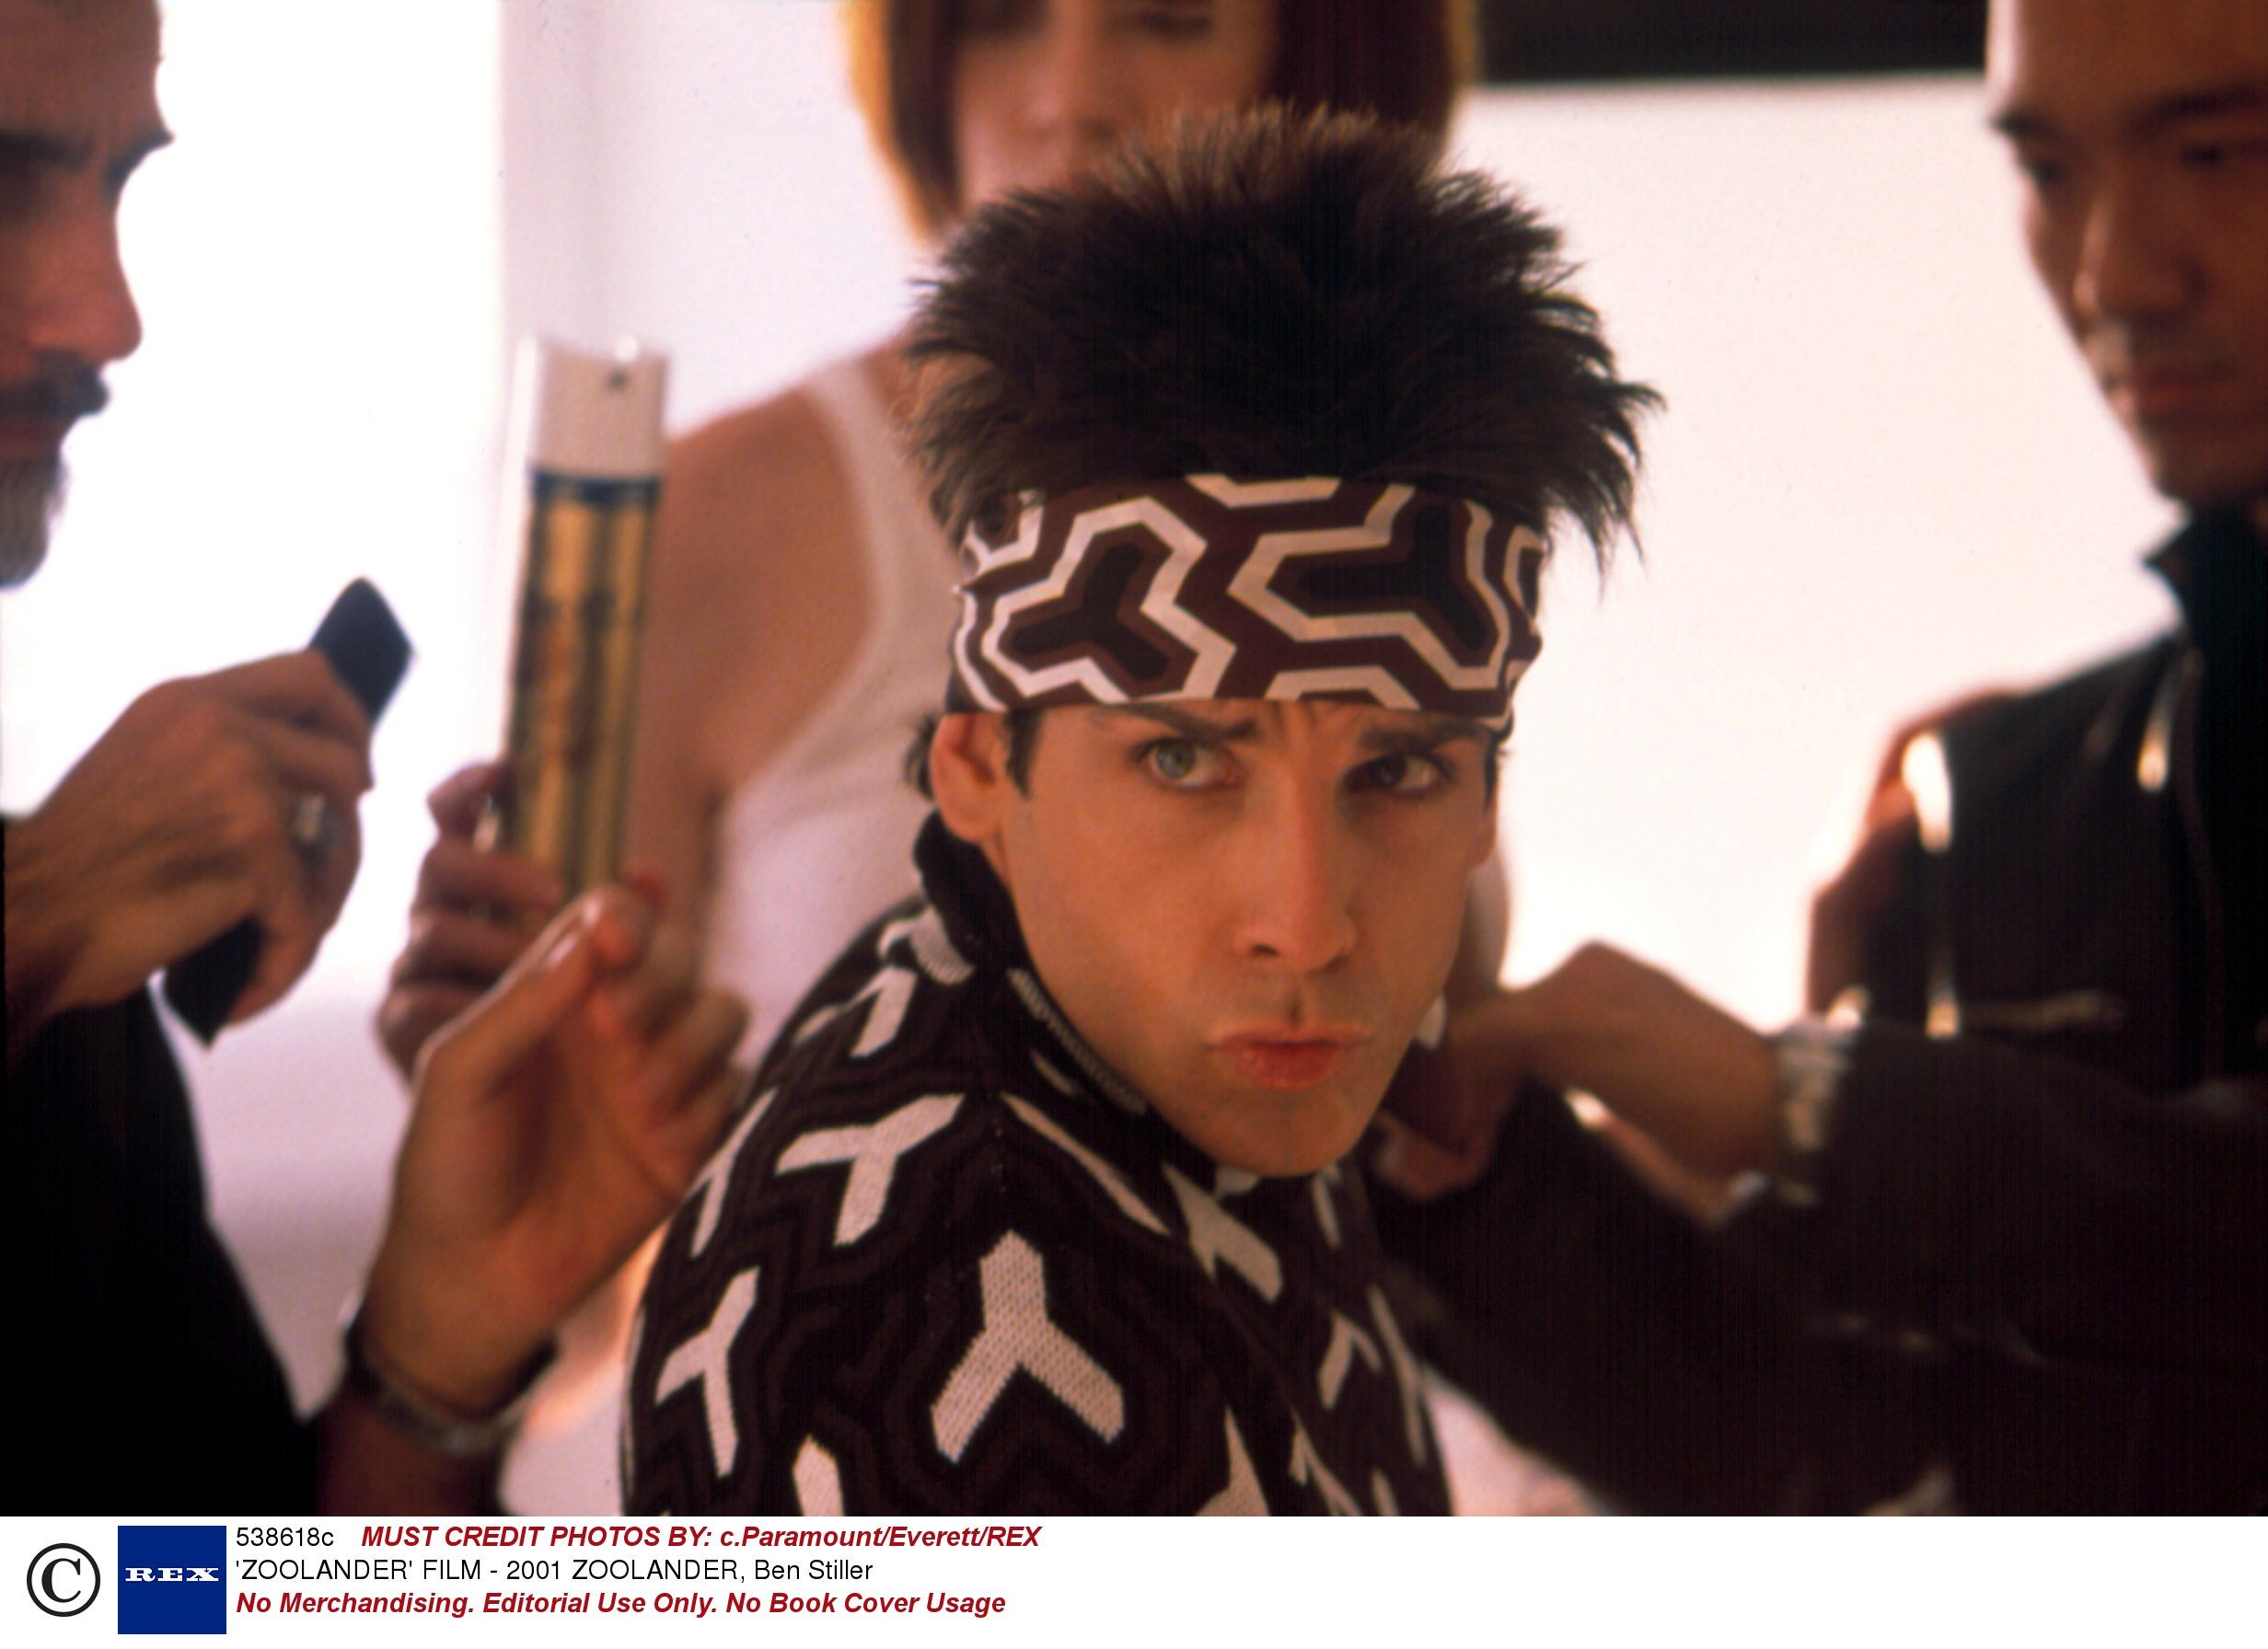 Zoolander 2 is happening here are the 10 funniest derek zoolander quotes